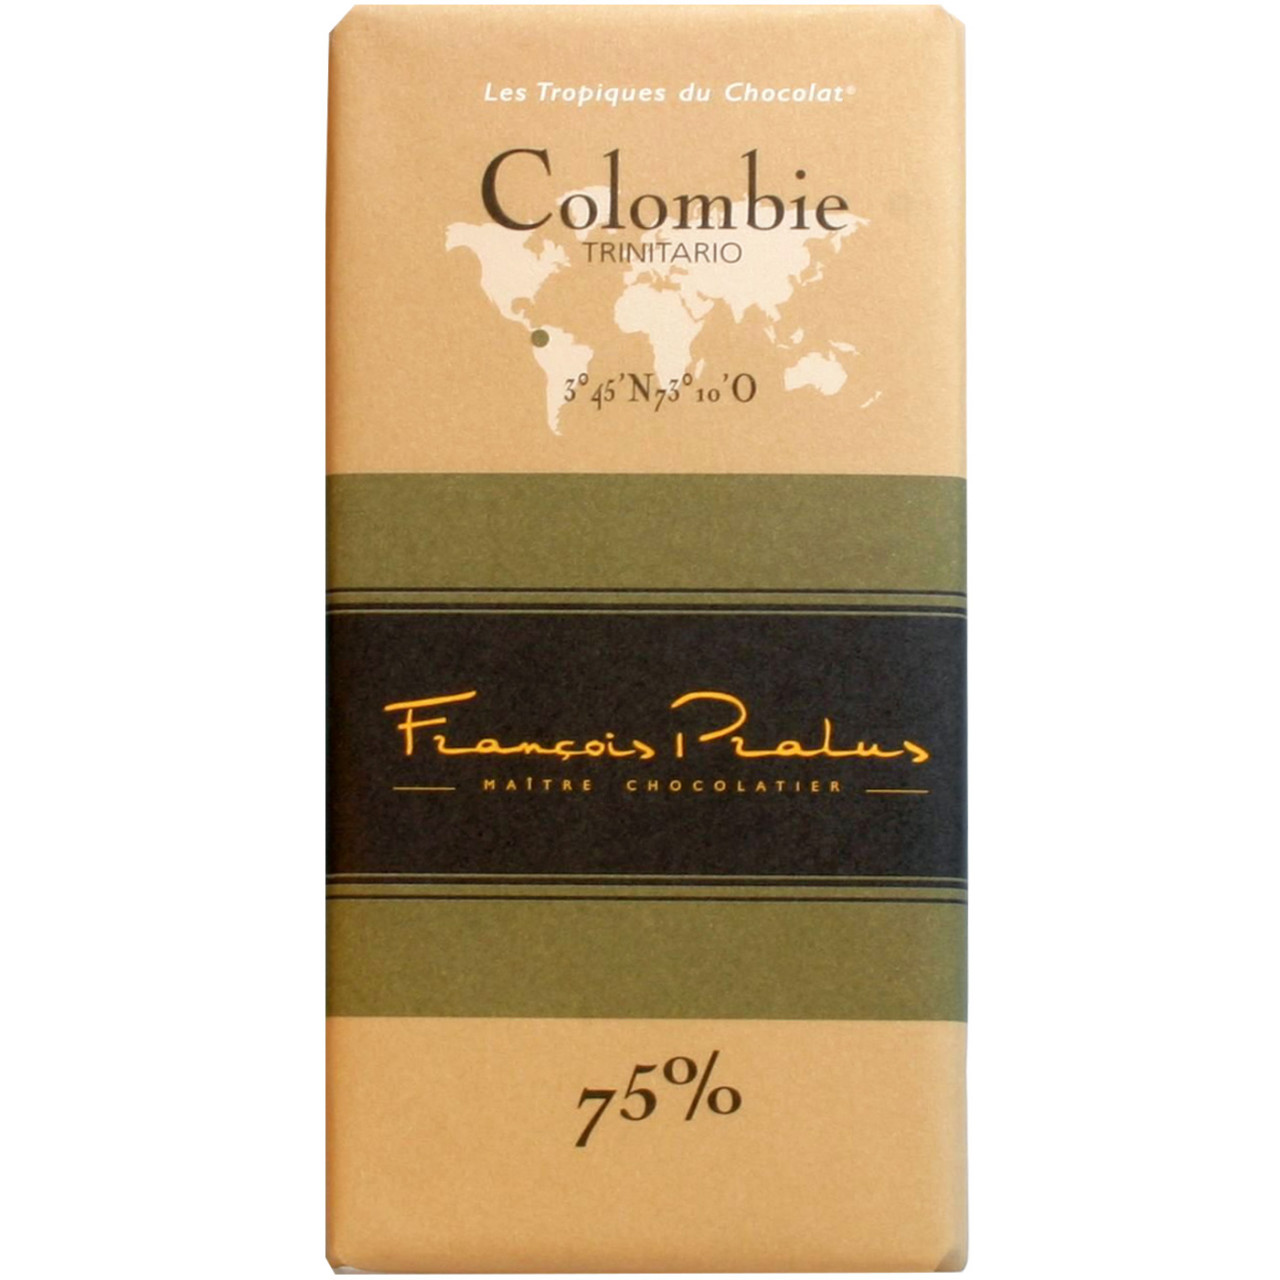 Dunkle Schokolade 75%, Kolumbien Trinitario, Colombie, chocolat noir, dark chocolate, , Bar of Chocolate , dark chocolate , - Chocolats-De-Luxe